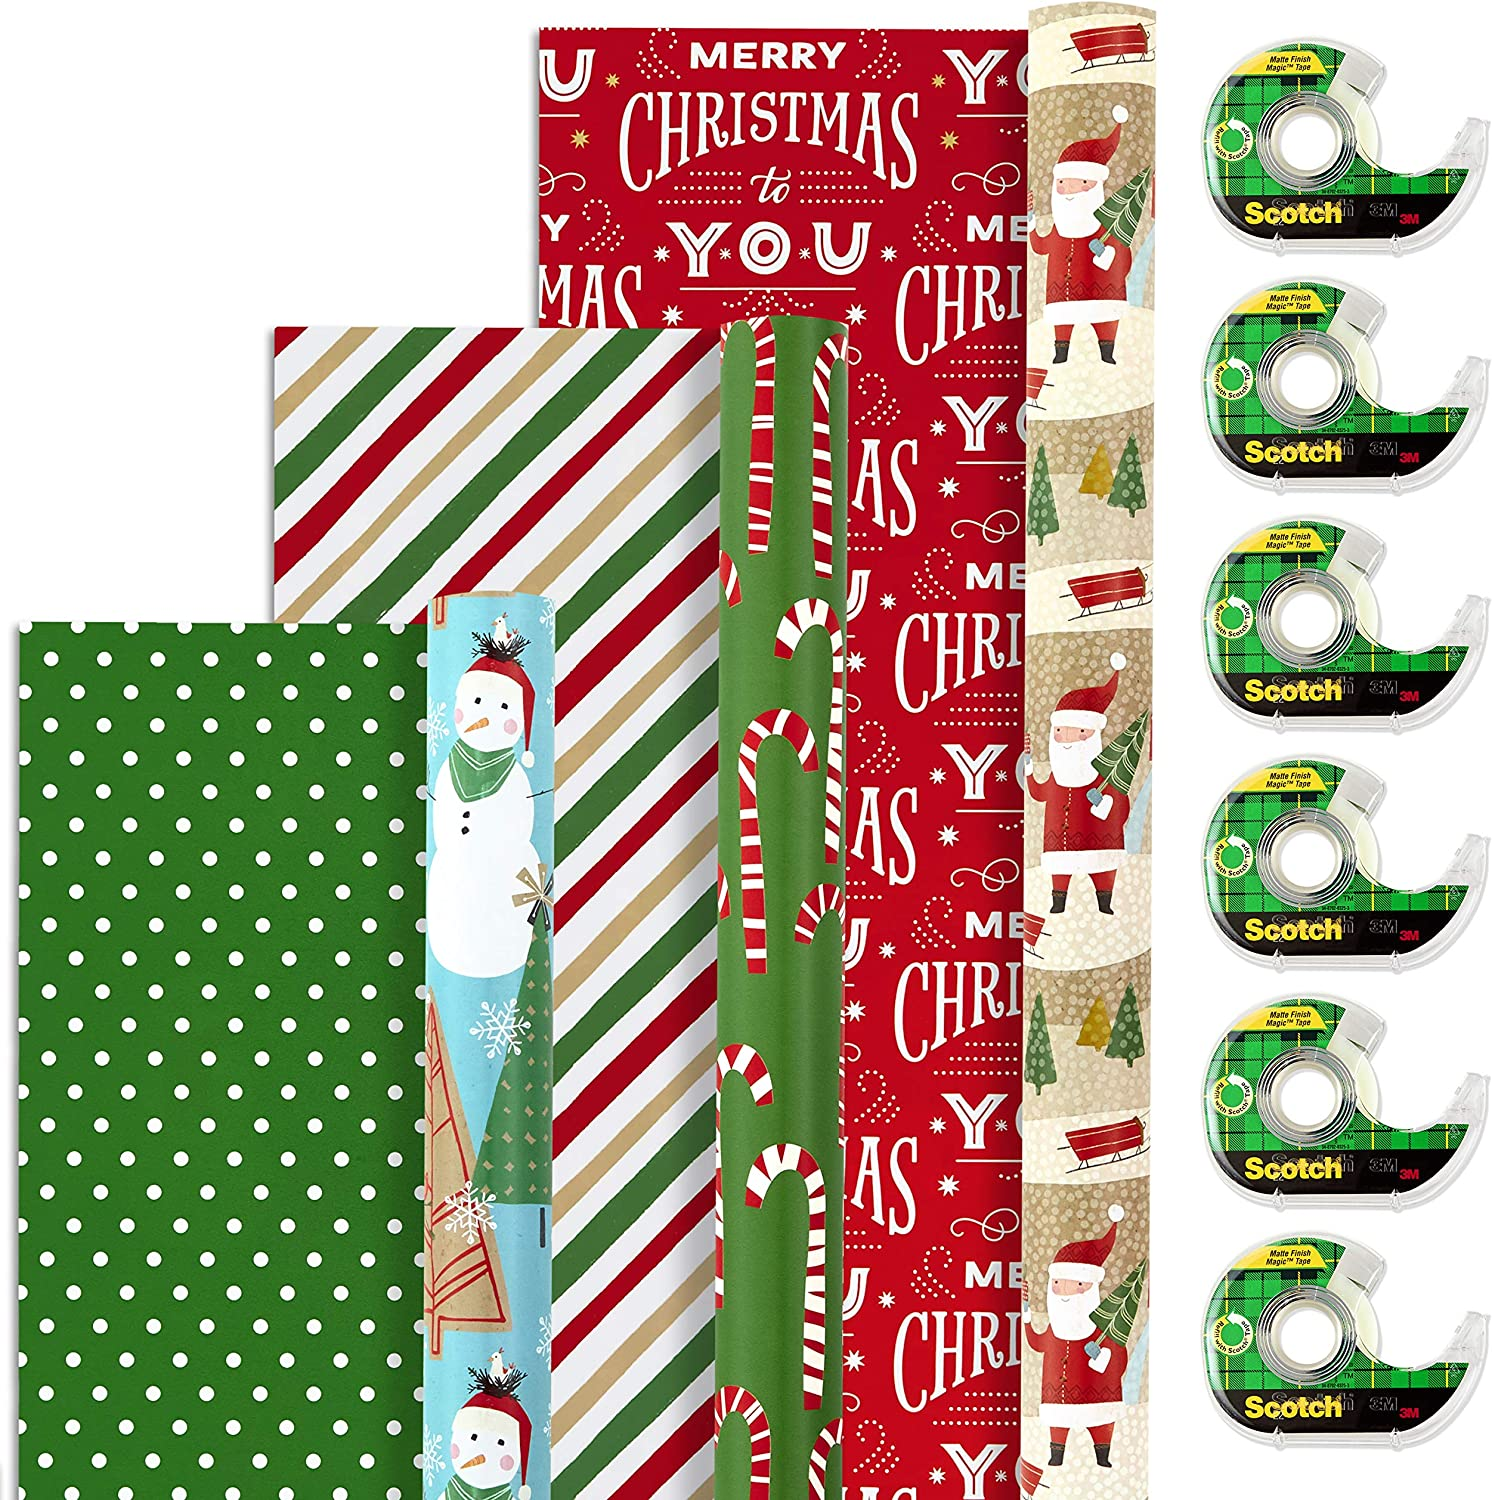 Hallmark Reversible Christmas Wrapping Paper (3 Rolls, 120 sq. ft. ttl.) and Scotch Brand Magic Tape (6 Dispensered Rolls, 3/4 x 650 in, 3900 in. ttl.) Gift Wrap Set